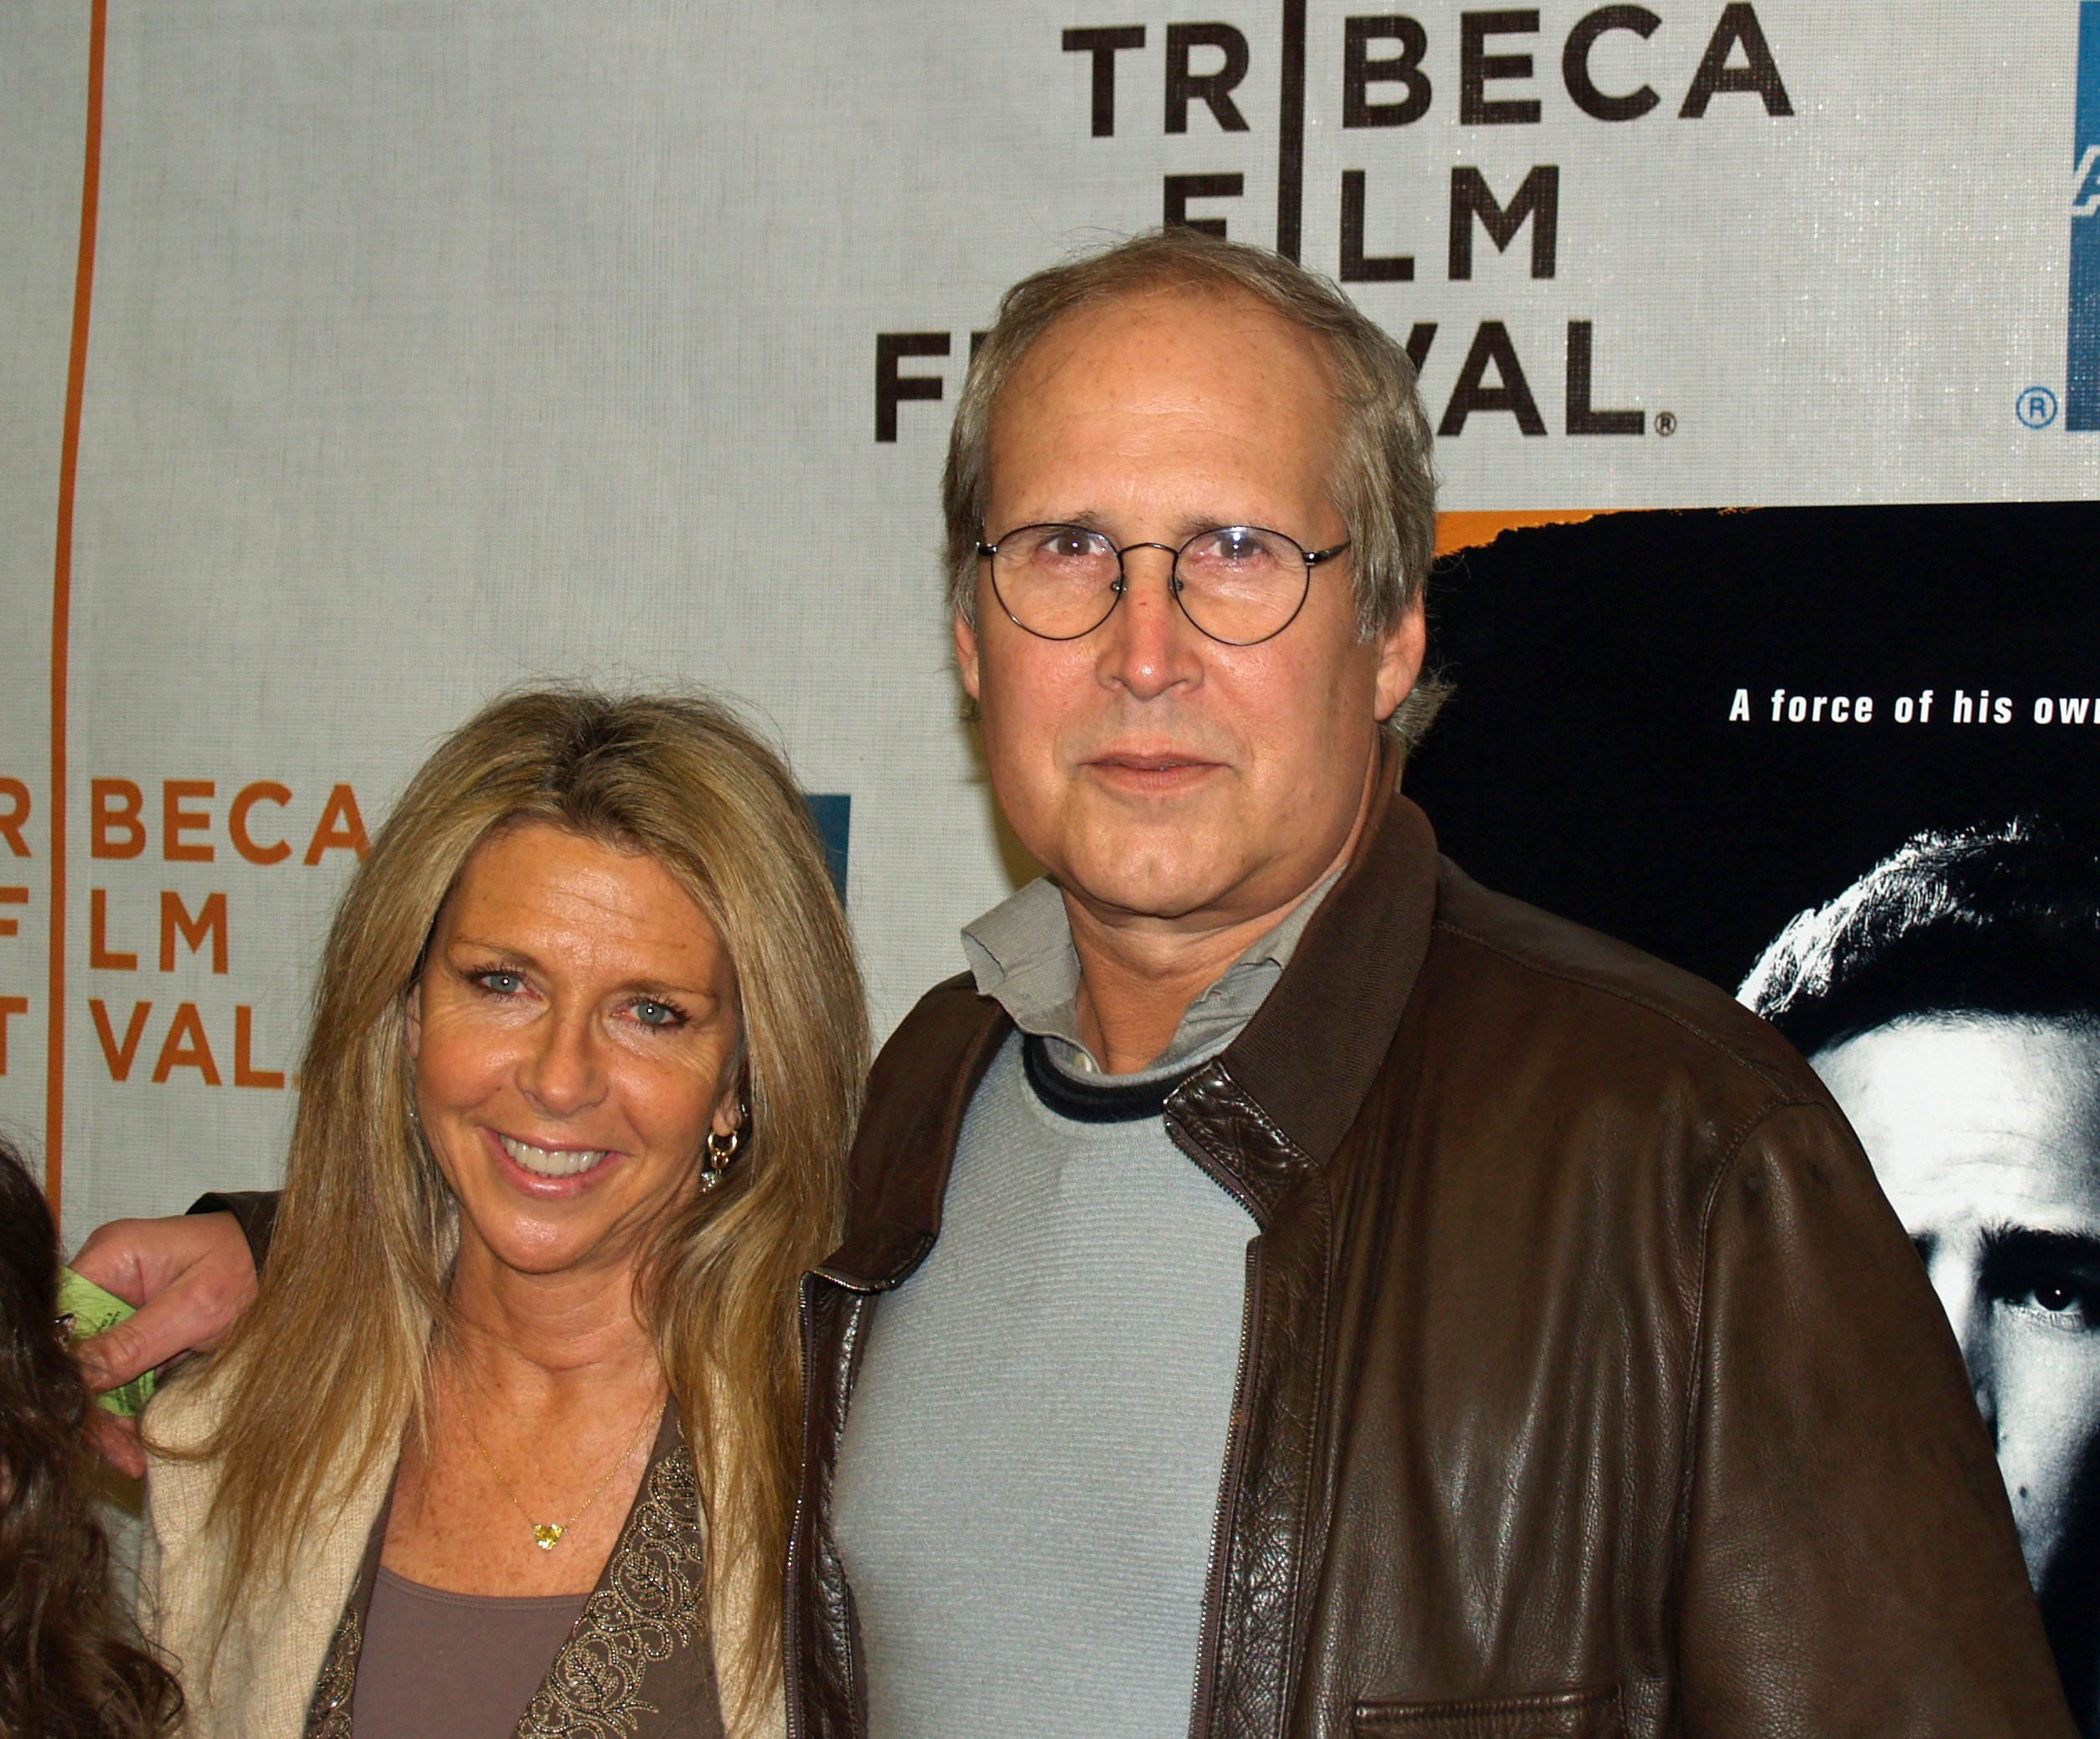 Chevy Chase health scare  Actor drops 50 pounds fast  friends fear     chevy chase